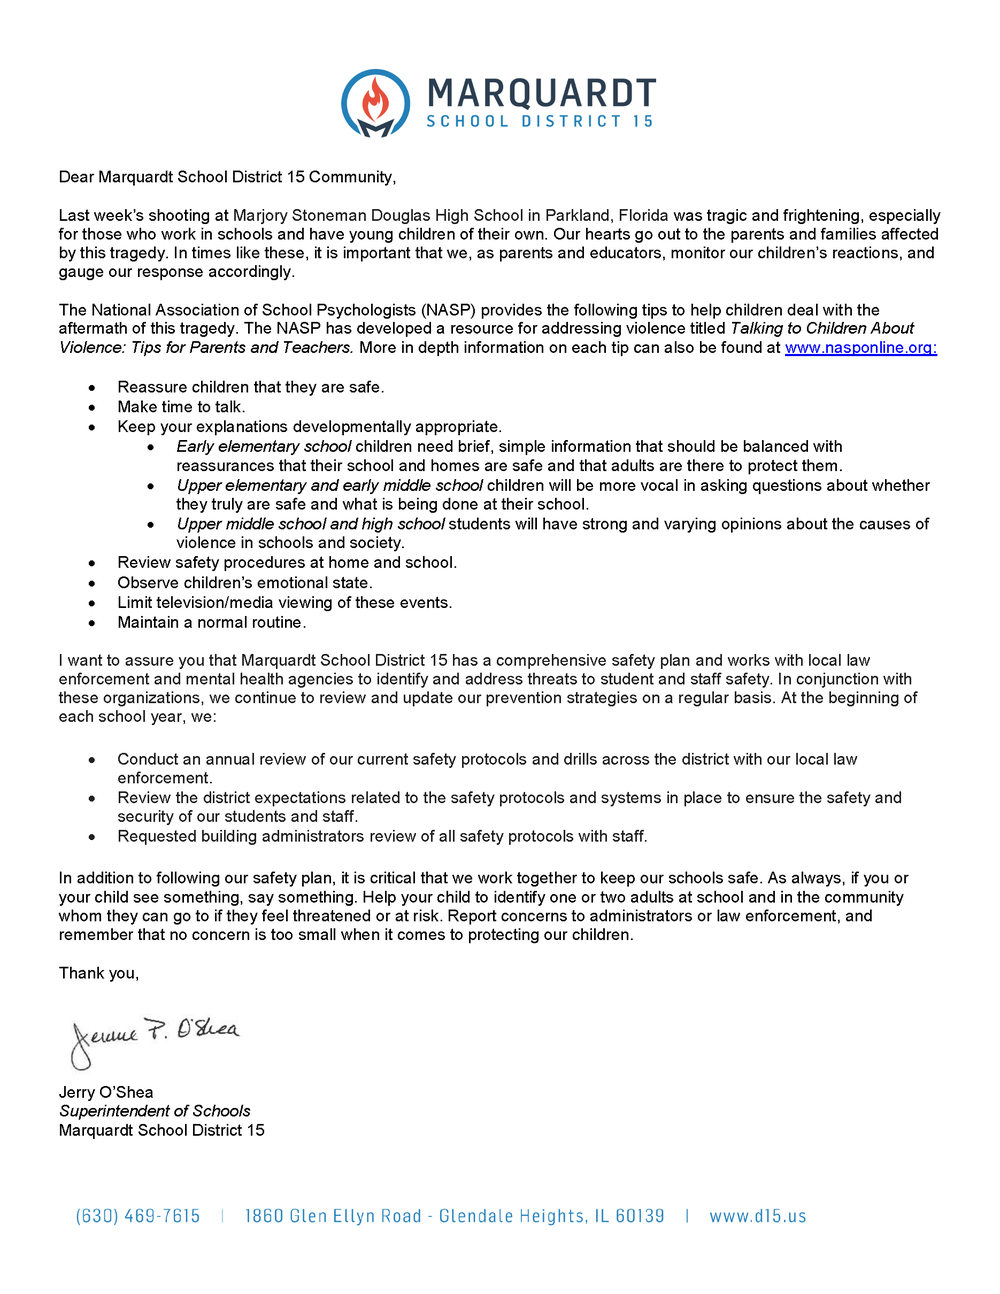 School Safety Letter_English Spanish_Page_1.png